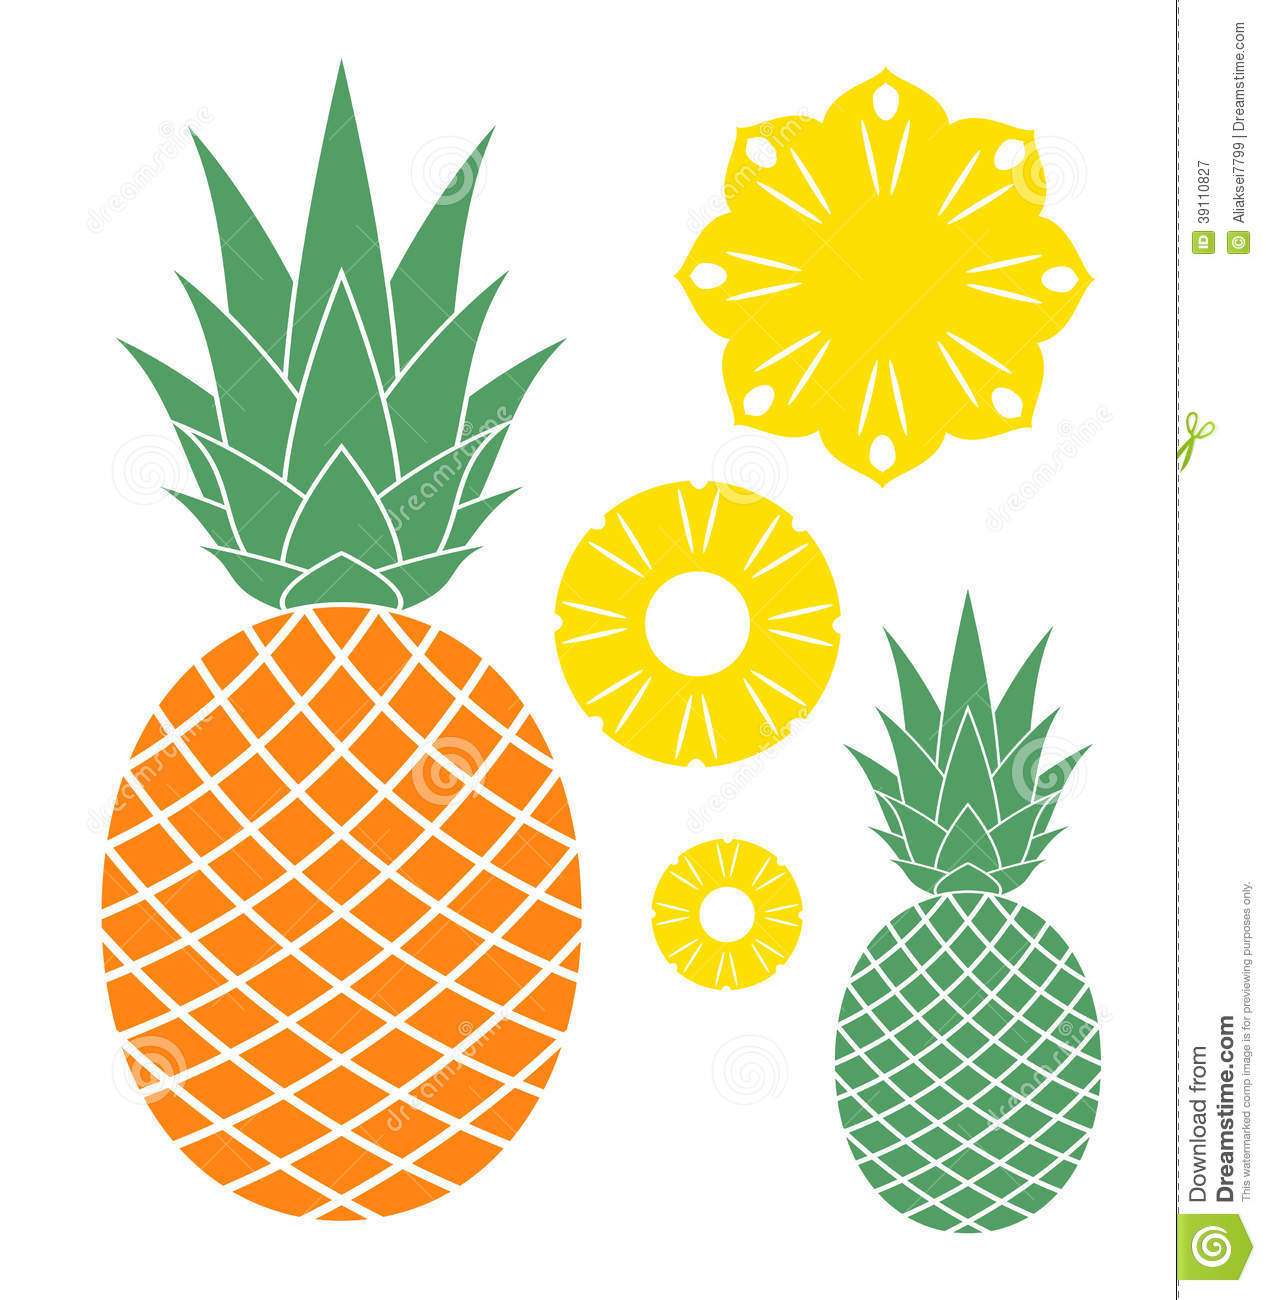 Simple clipart pineapple #15